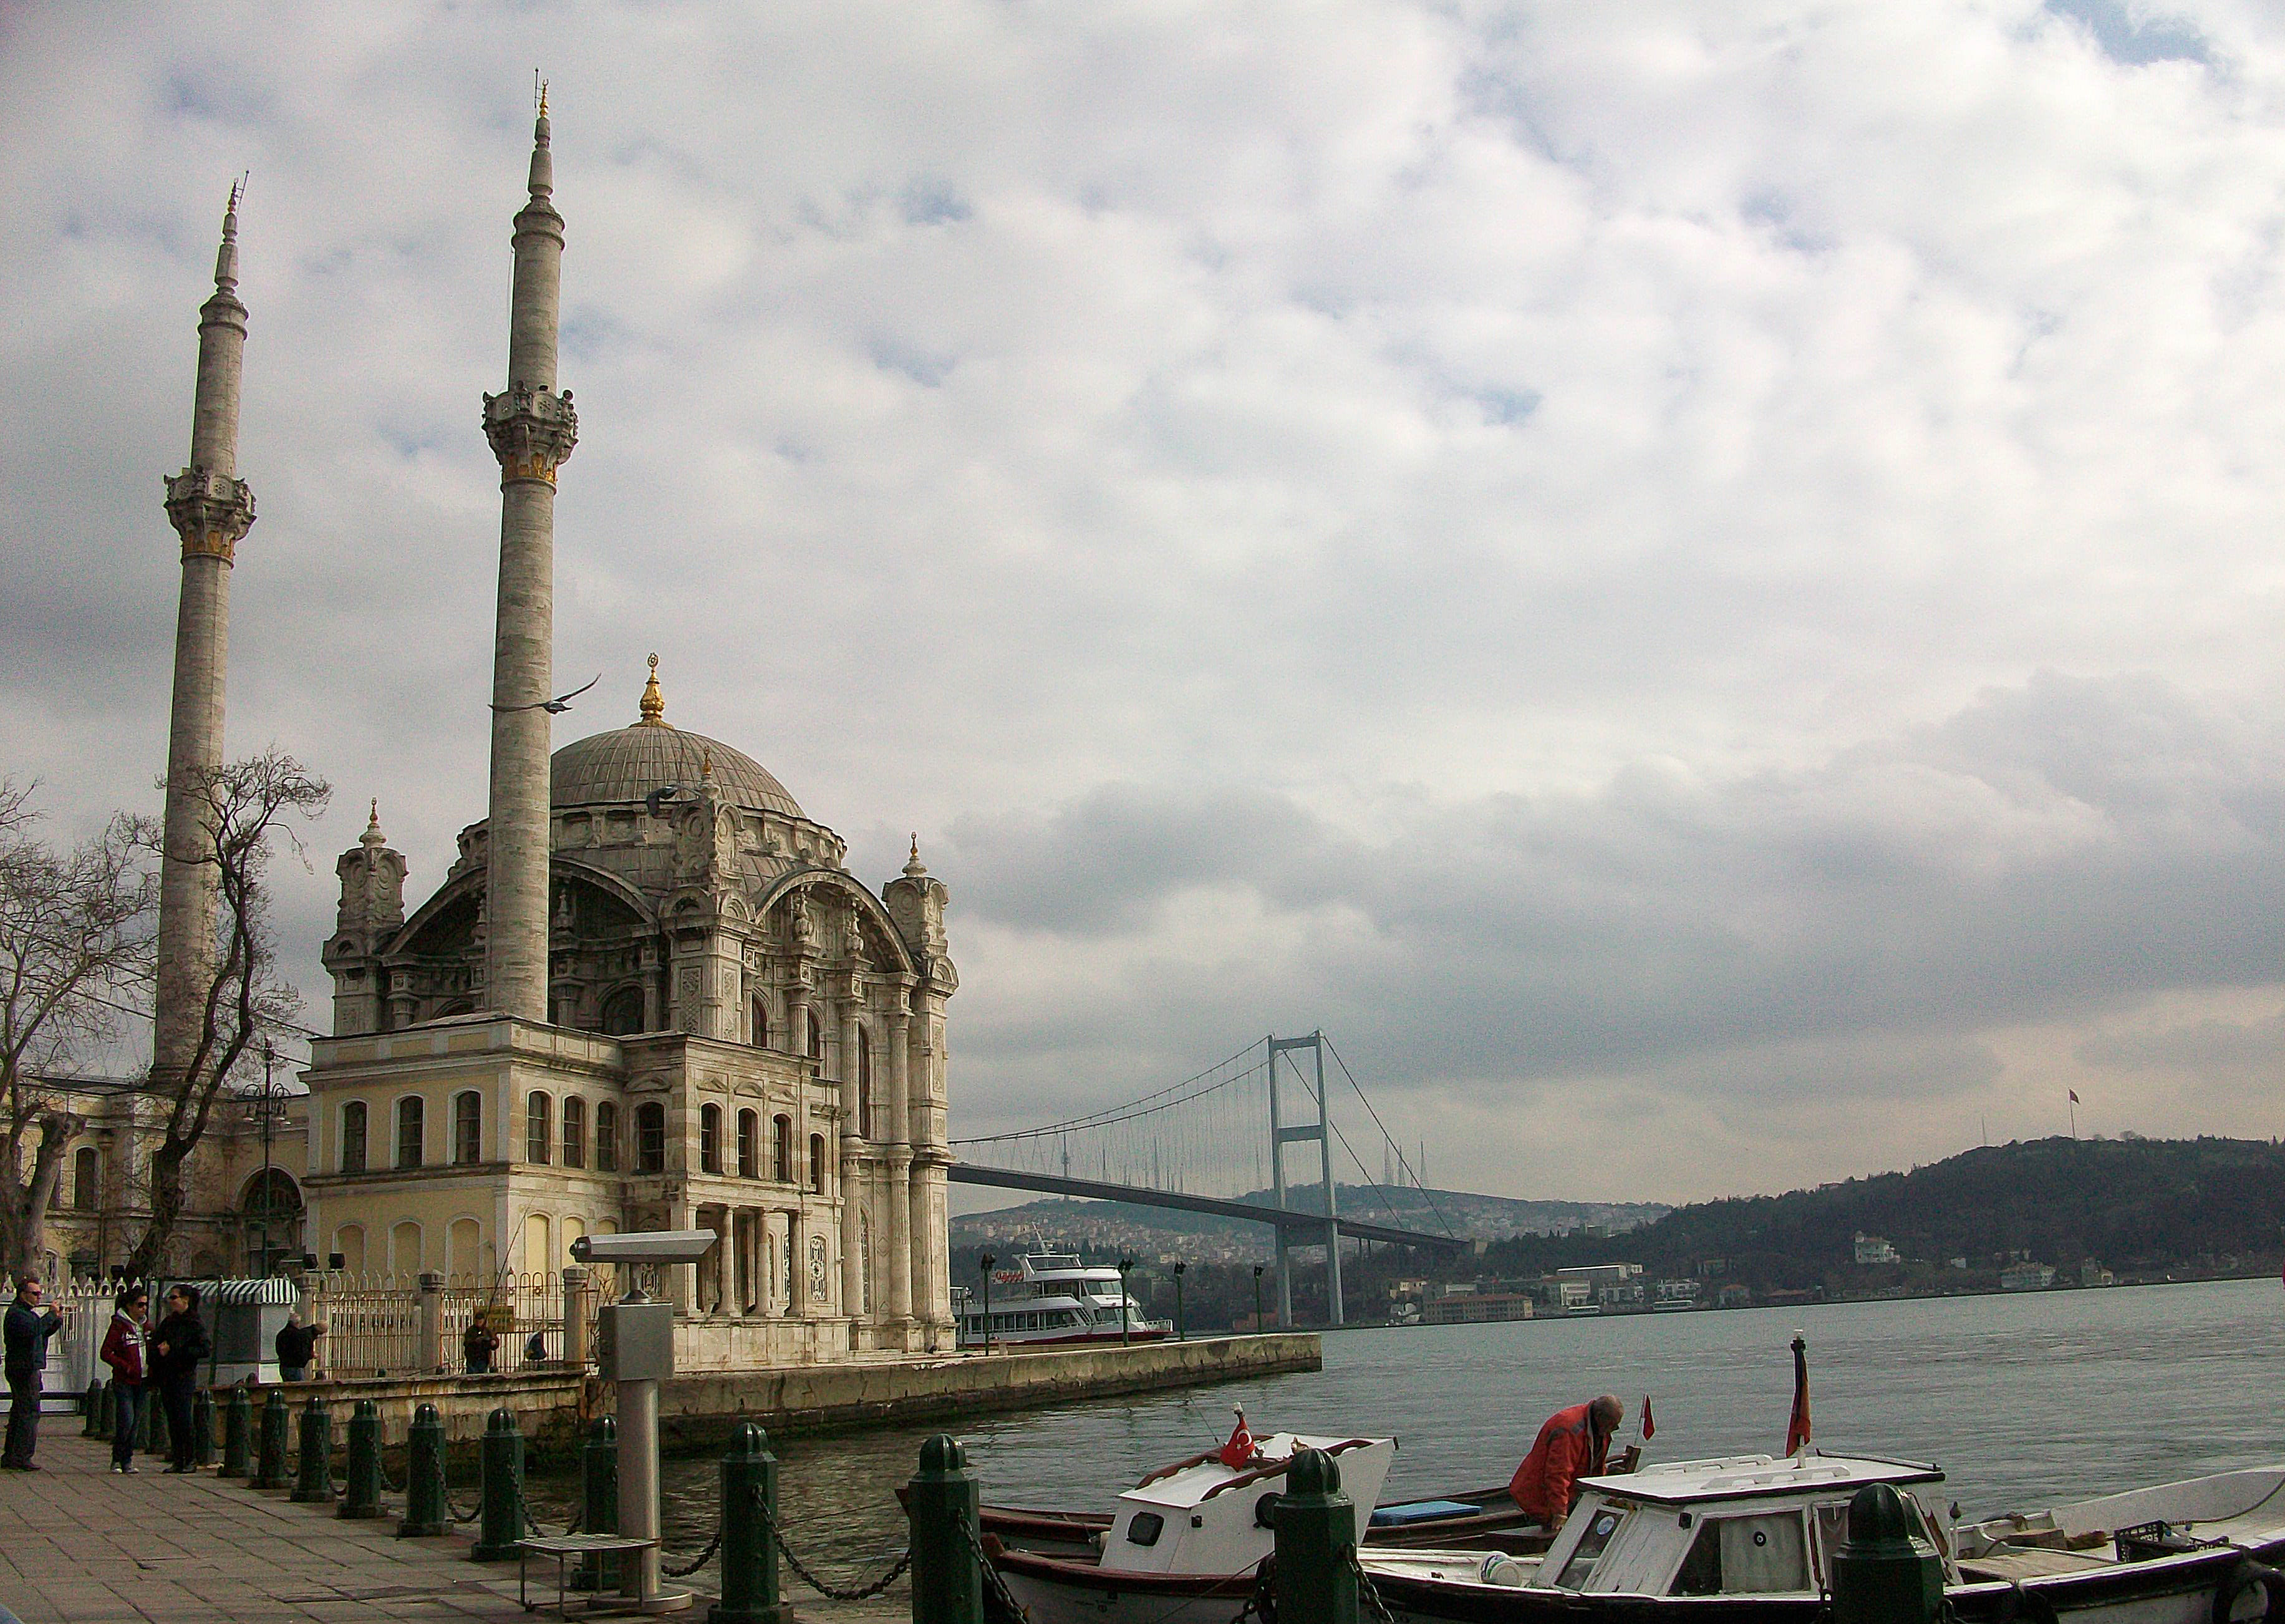 The perfectly located Ortakoy Mosque with the Bosphorous Bridge in the distance